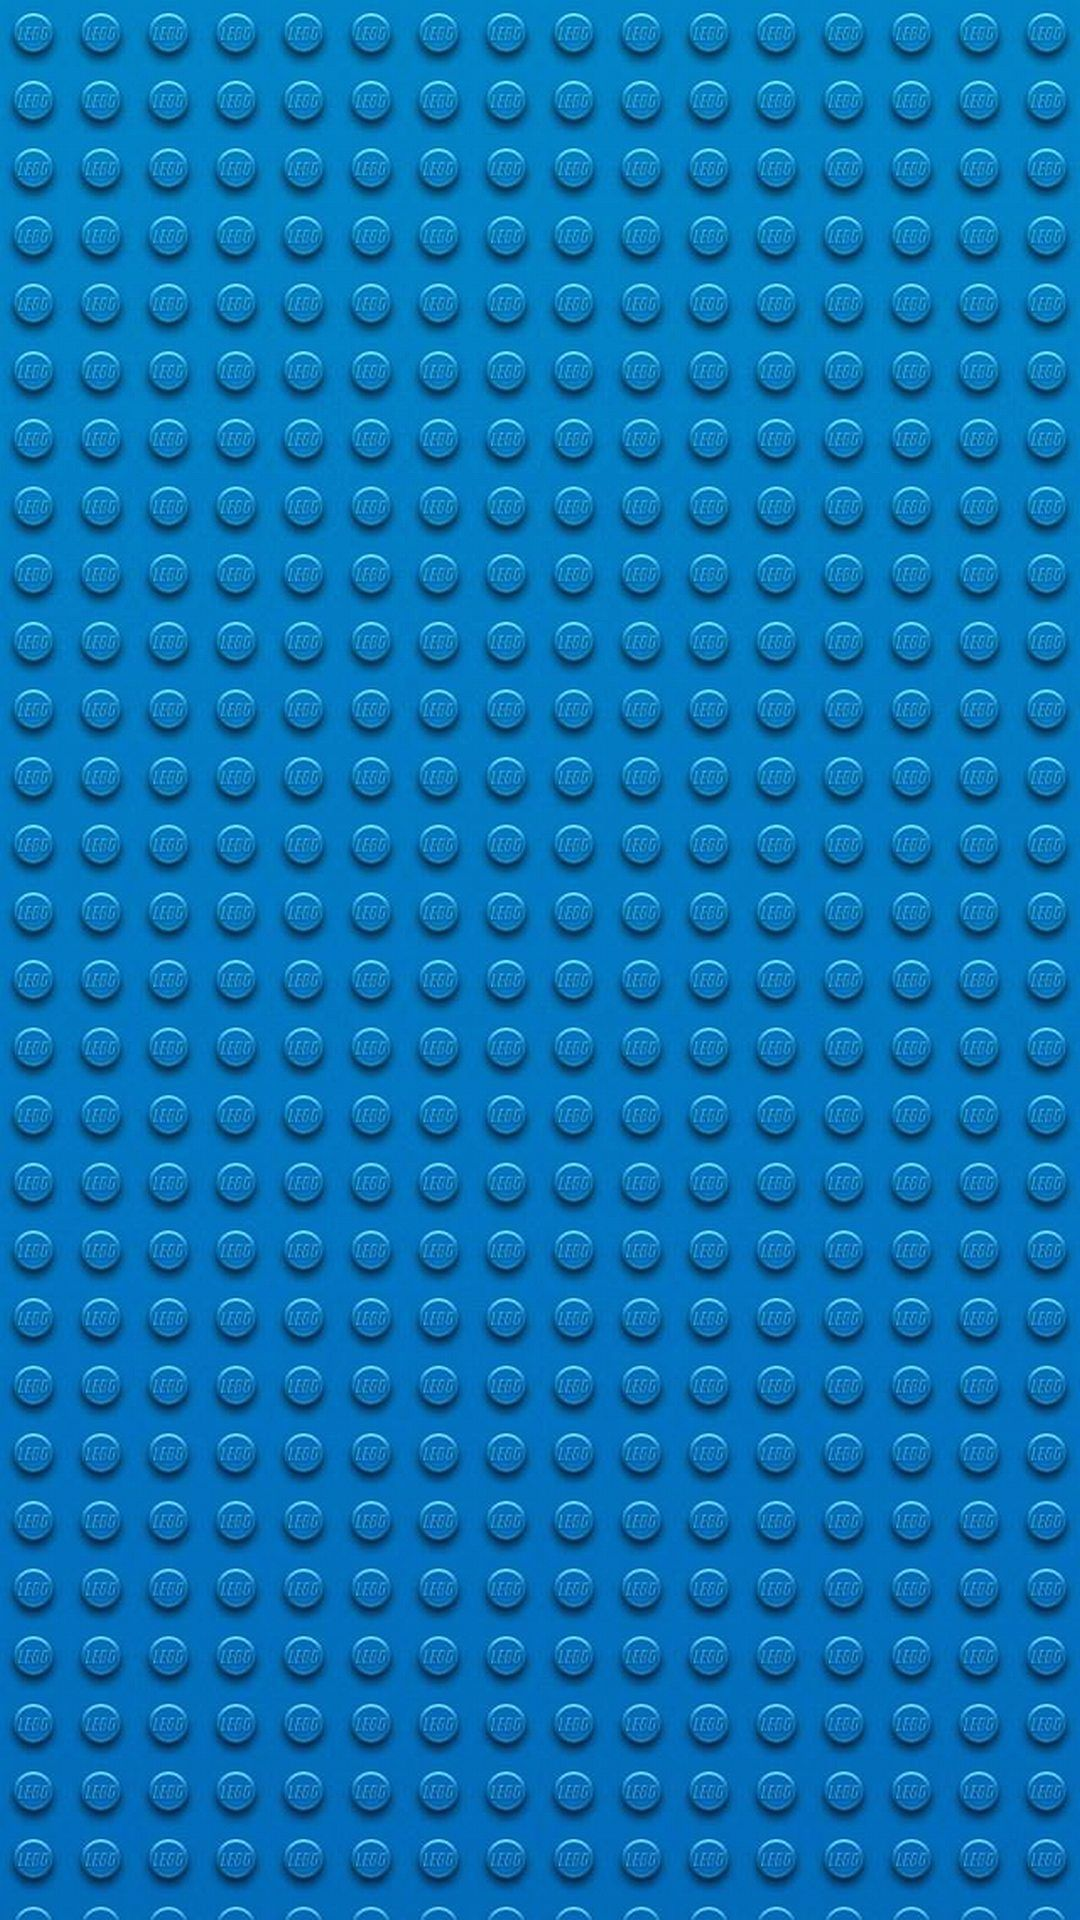 This Is Cool Blue Lego Background Tap To See More Texture IPhone Wallpapers